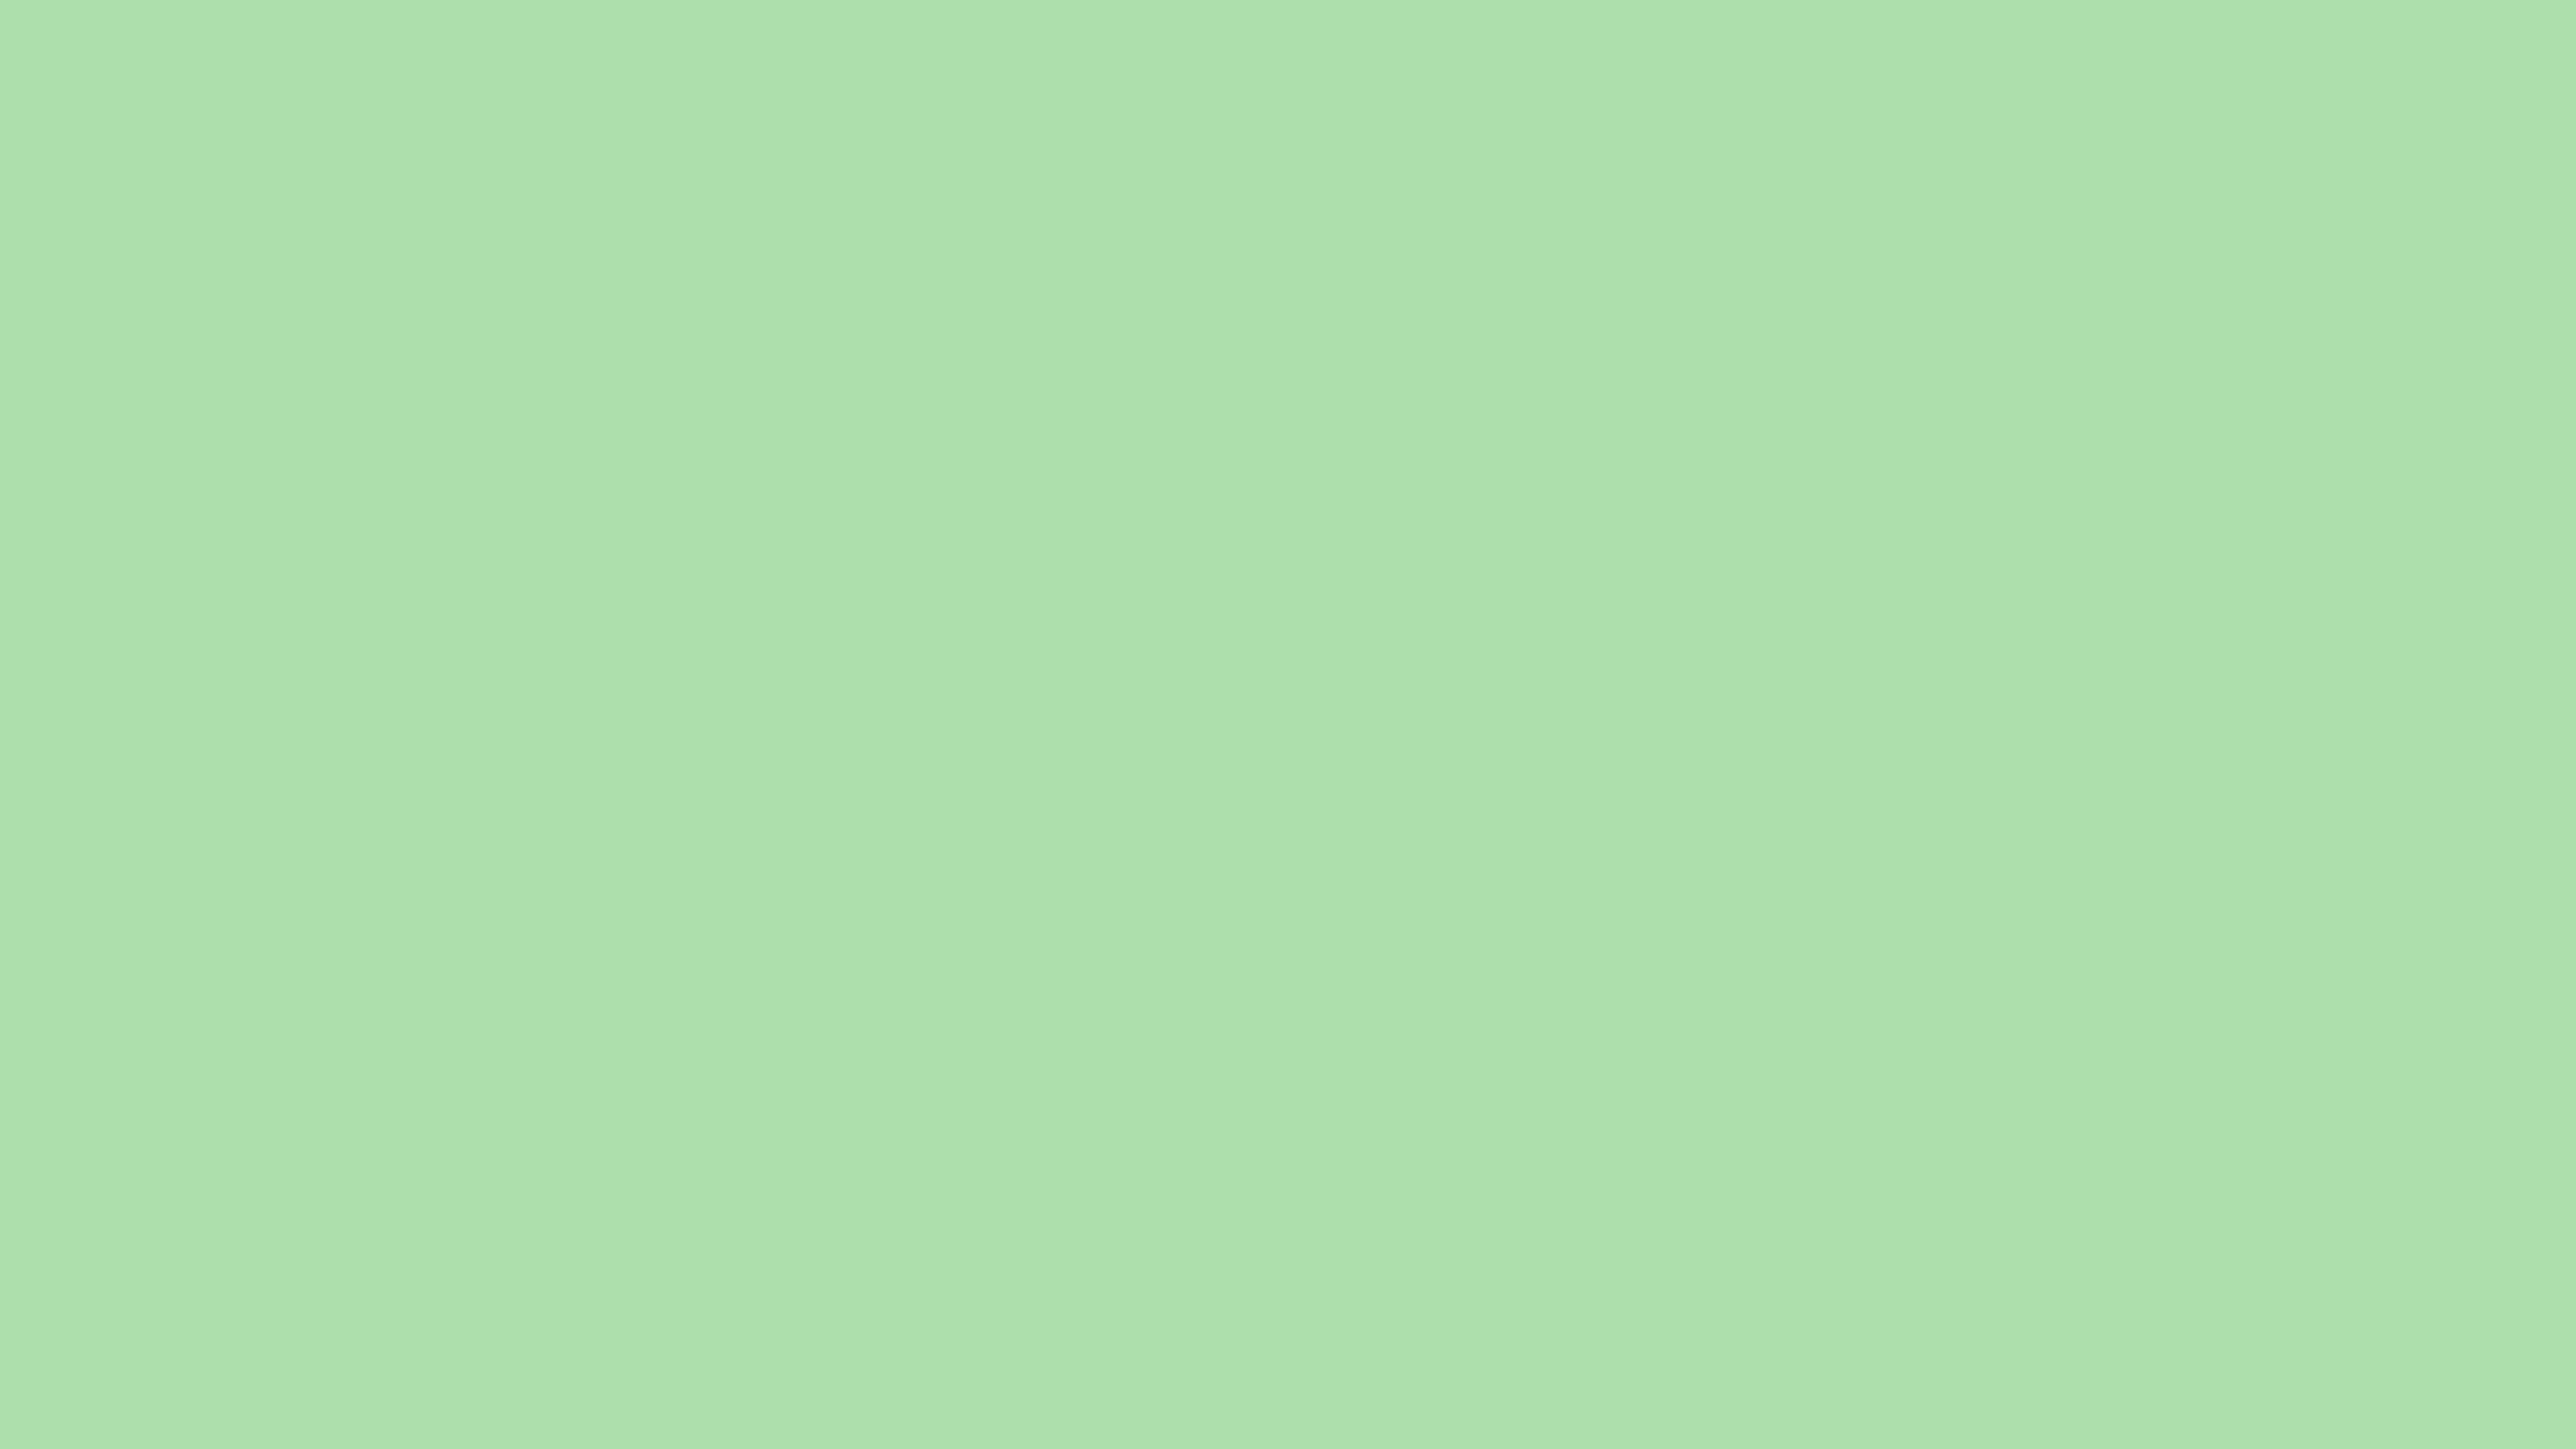 7680x4320 Light Moss Green Solid Color Background